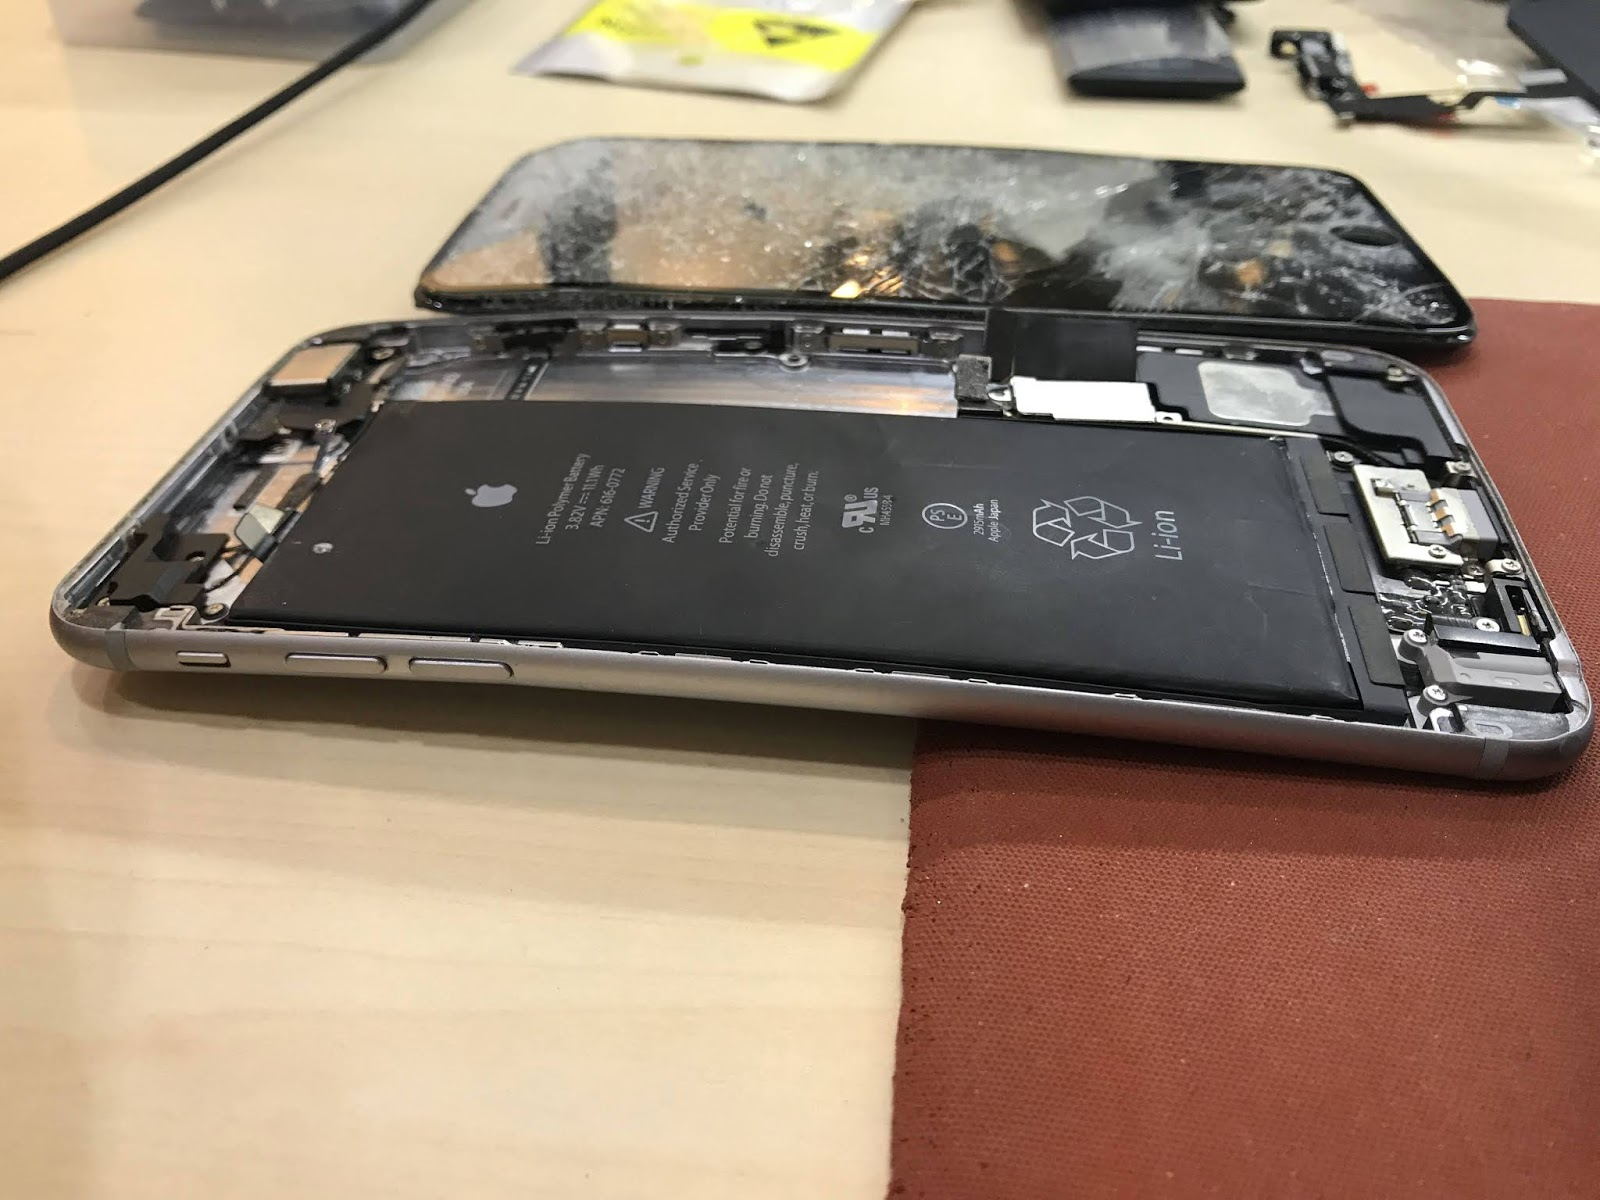 iPhone Repair Service in Malaysia  Advanced Circuit Board Repair Center: 2019